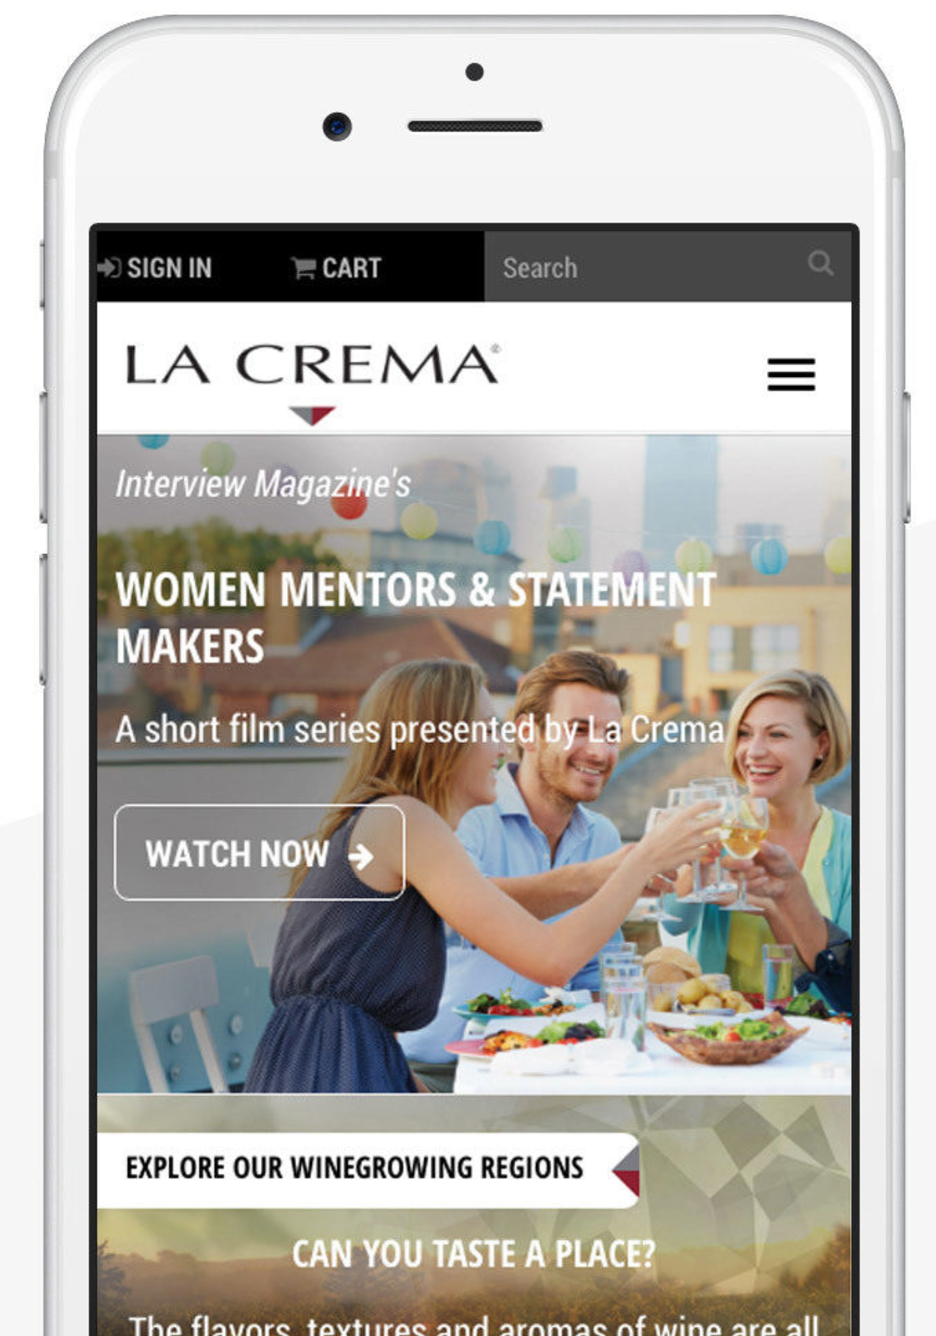 La-Crema-winery-website-responsive-design.png